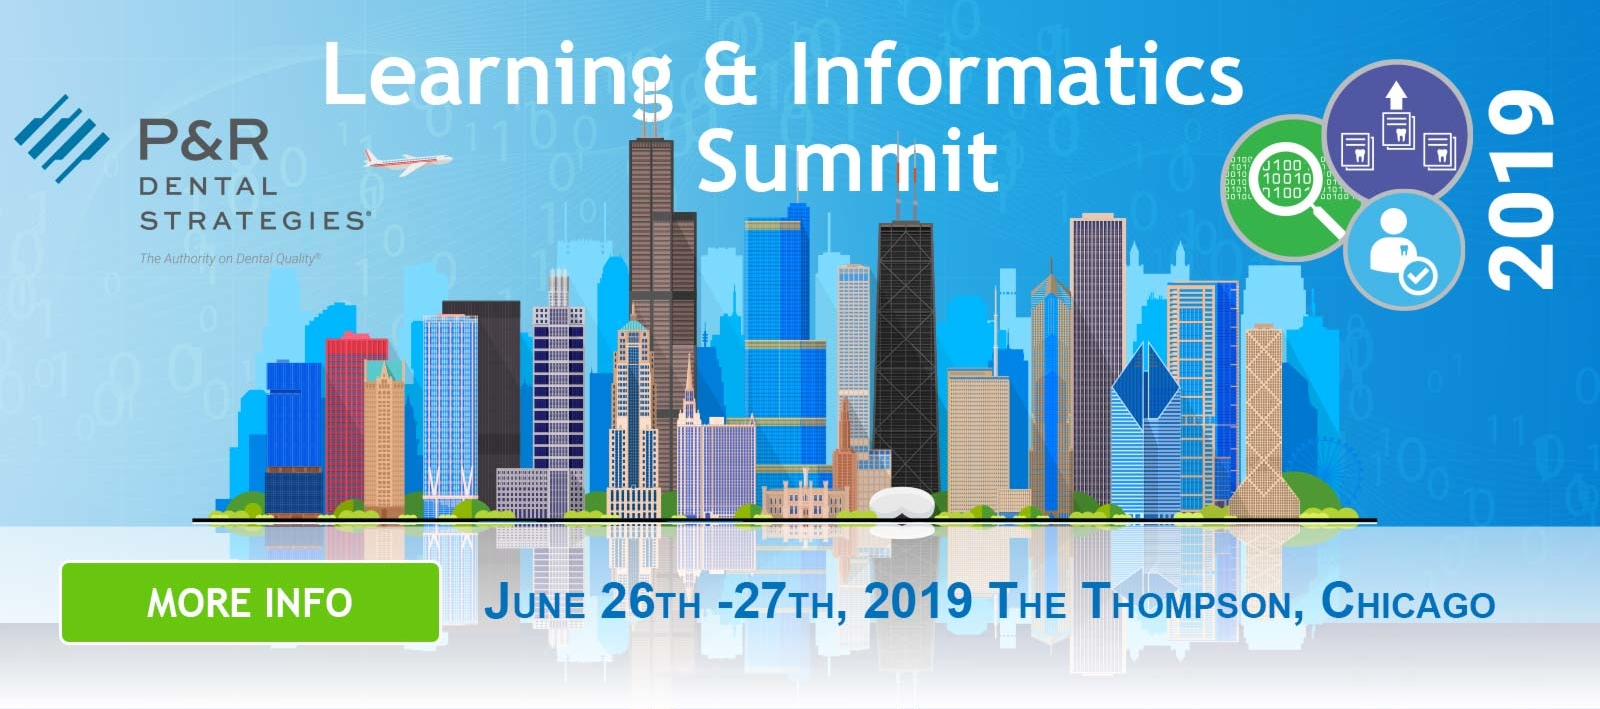 The P&R Dental Strategies 2019 Learning & Informatics Summit